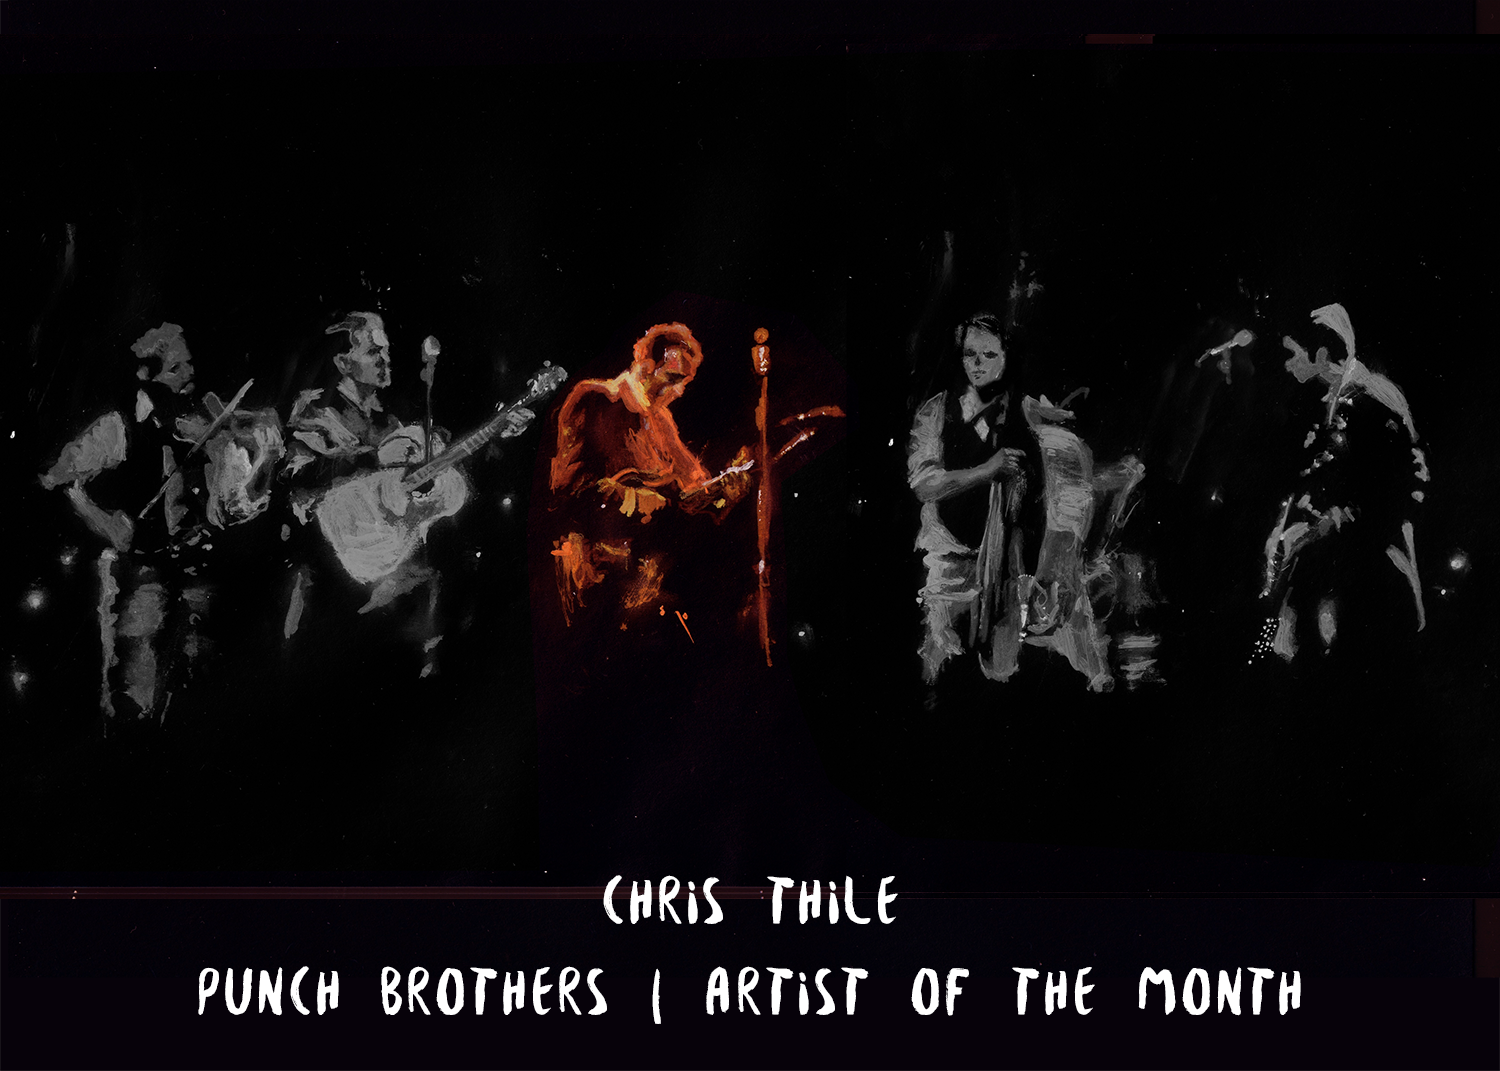 Punch Brothers' Chris Thile: Escapism and Clarity